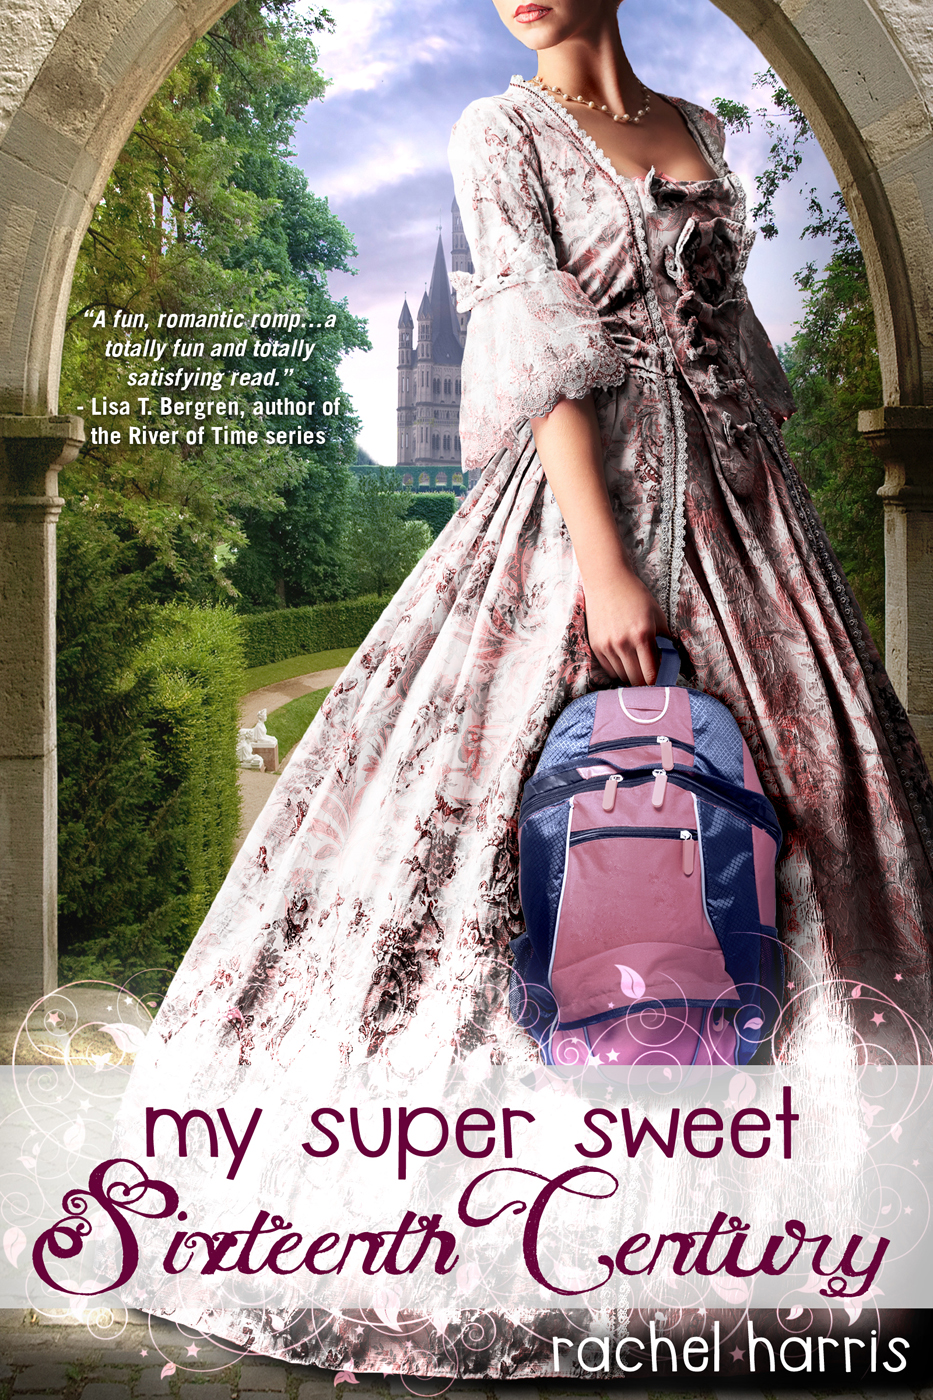 My Super Sweet Sixteenth Century By: Rachel Harris